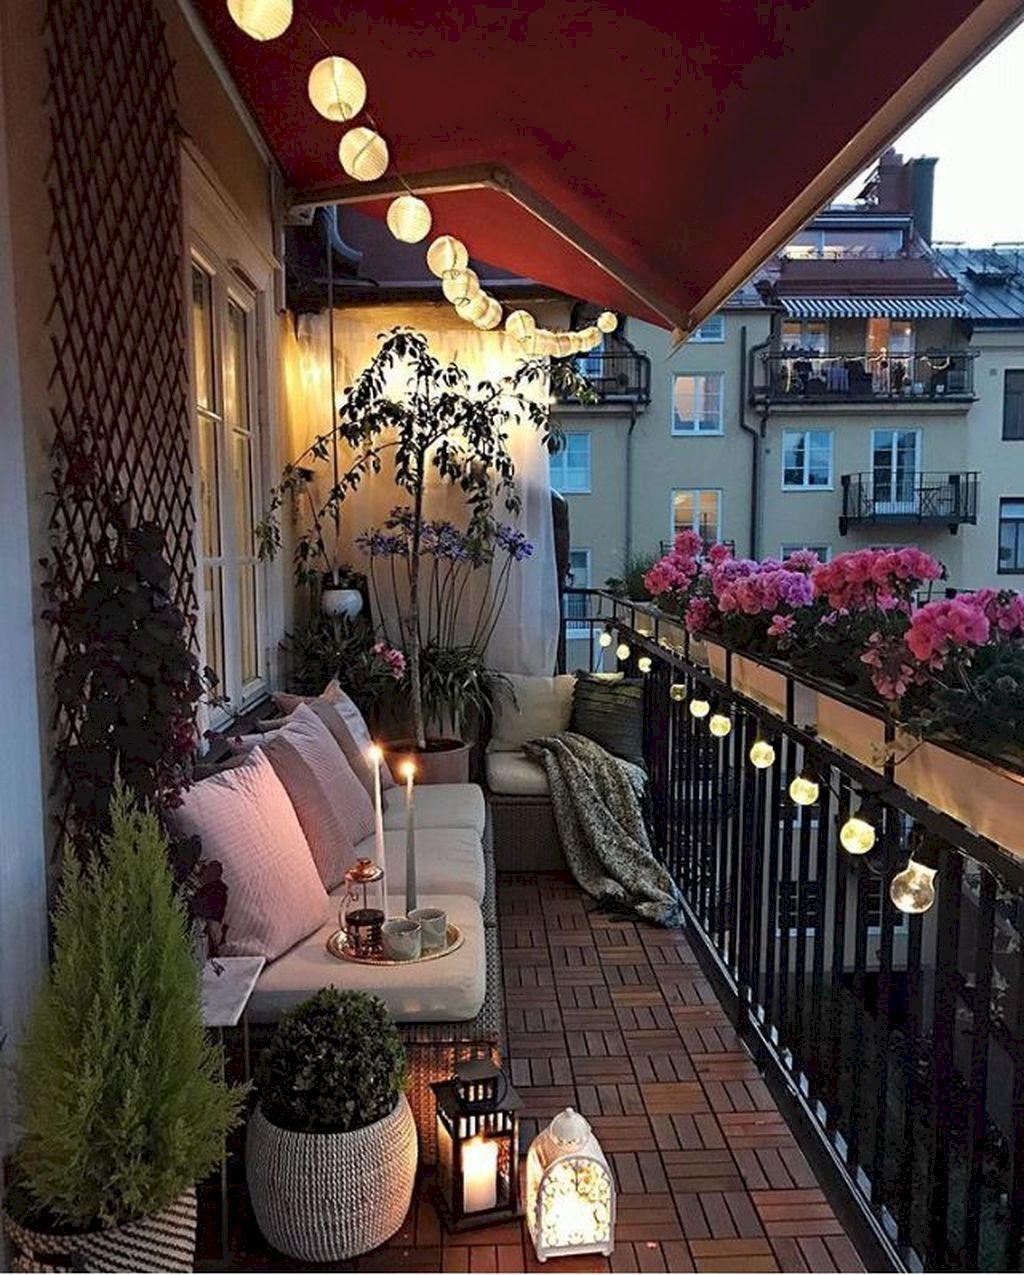 Lights on the patio apartment design in balcony decorating also rh pinterest